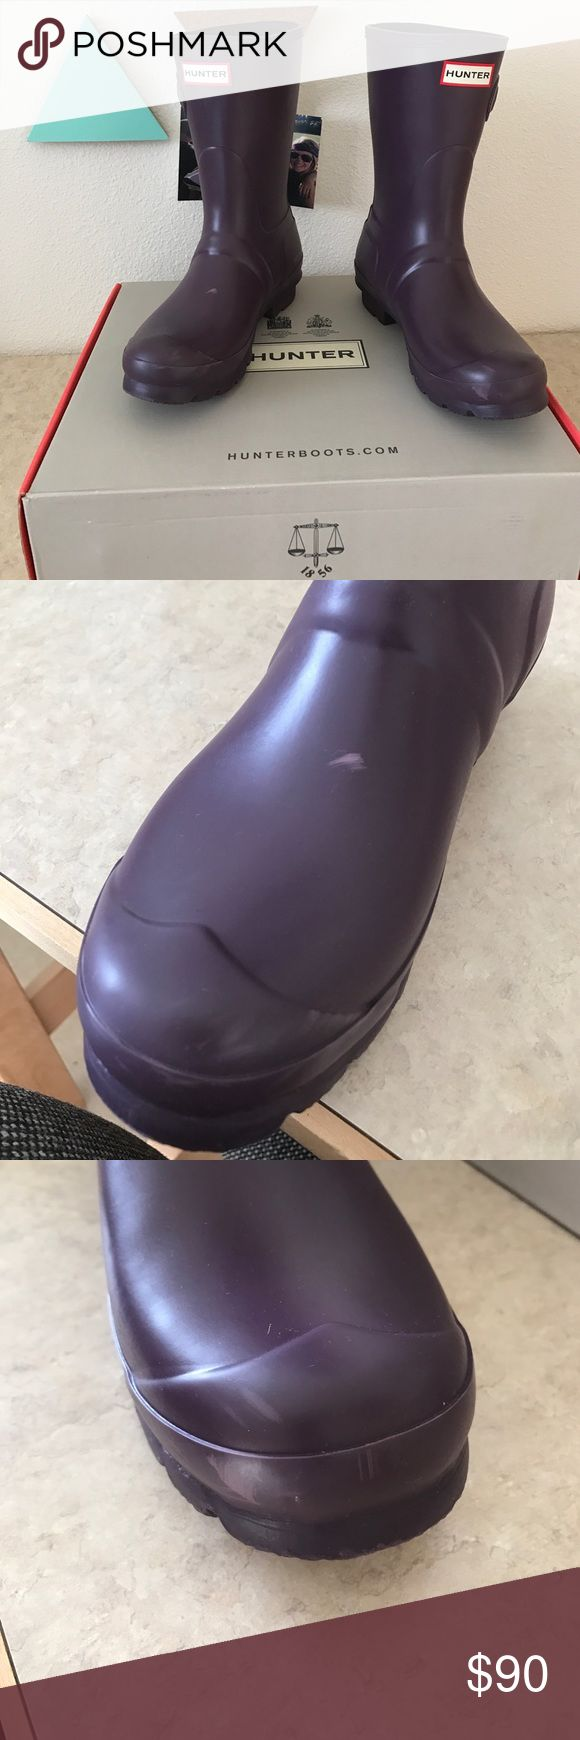 "SHORT HUNTER SALE matte ""purple urchin"", perfect condition- NEED TO CLEAN OUT MY CLOSET!!! ACCEPTING OFFERS!!! Hunter Boots Shoes Winter & Rain Boots"